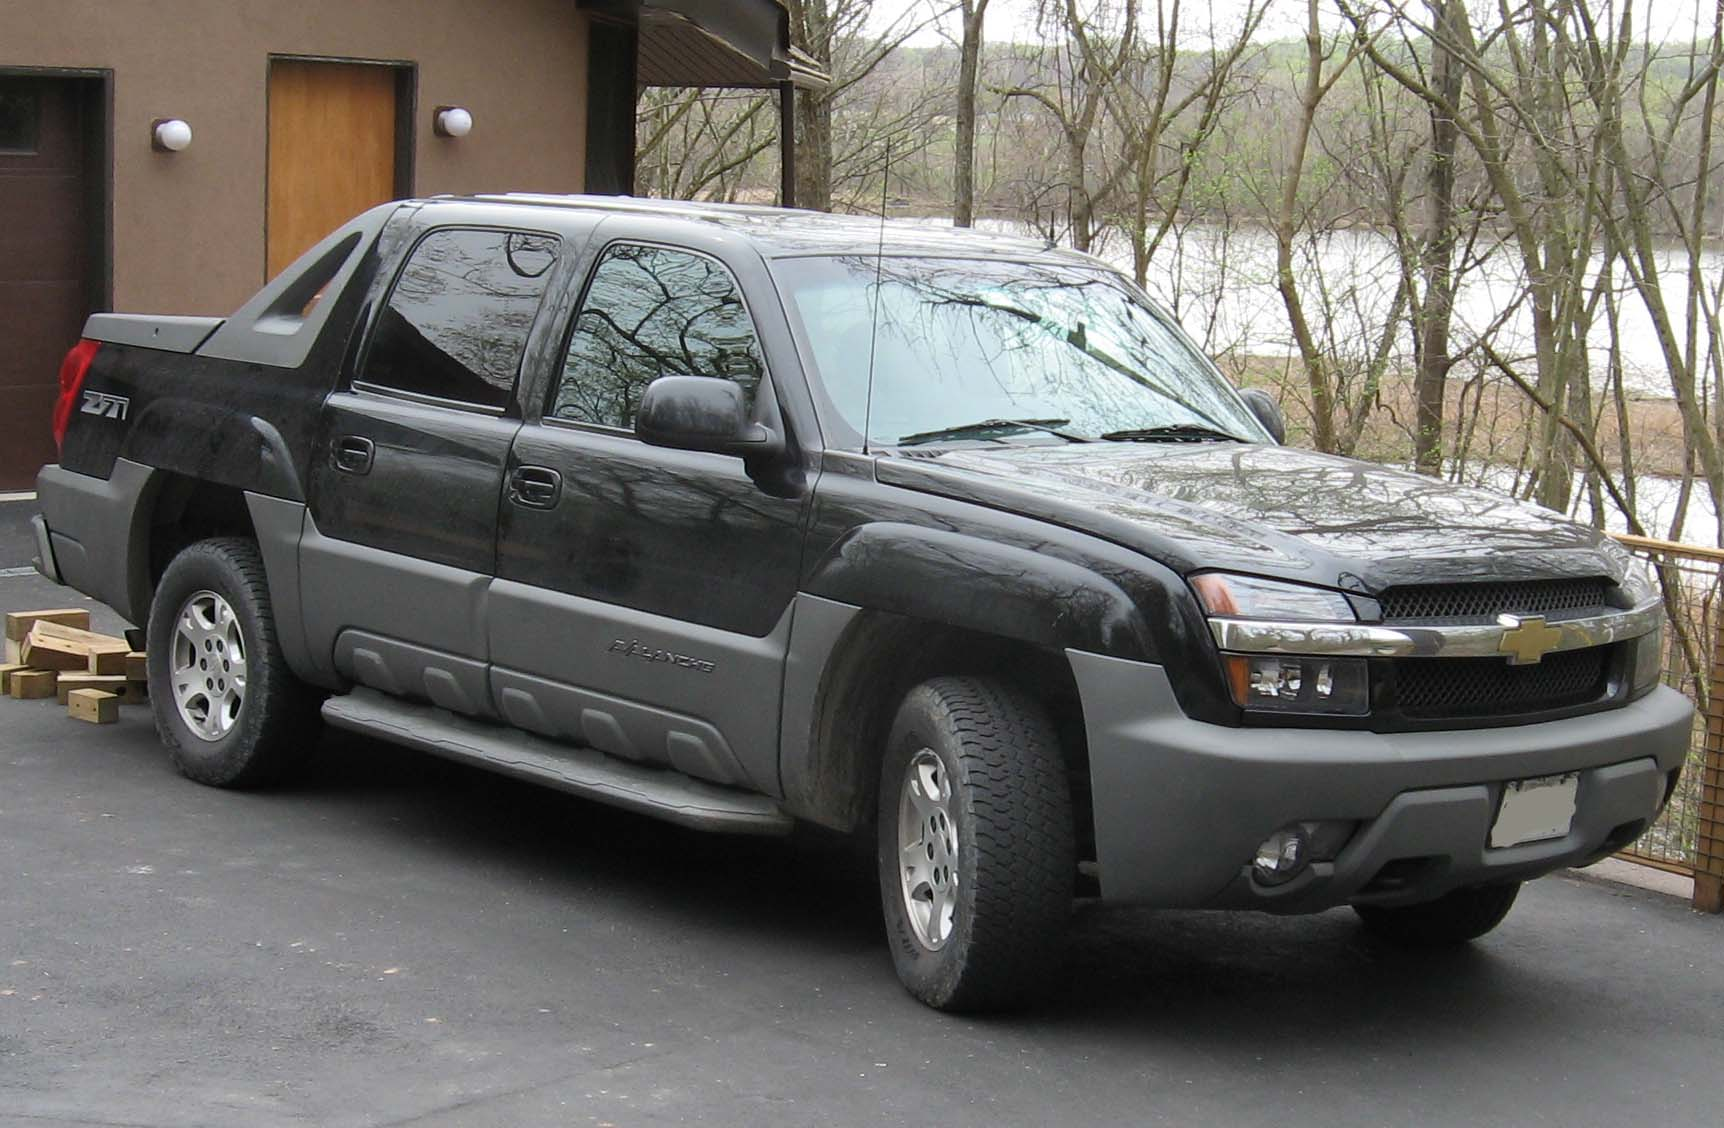 Chevrolet Avalanche Wikipedia >> File:1st Chevrolet Avalanche.jpg - Wikimedia Commons